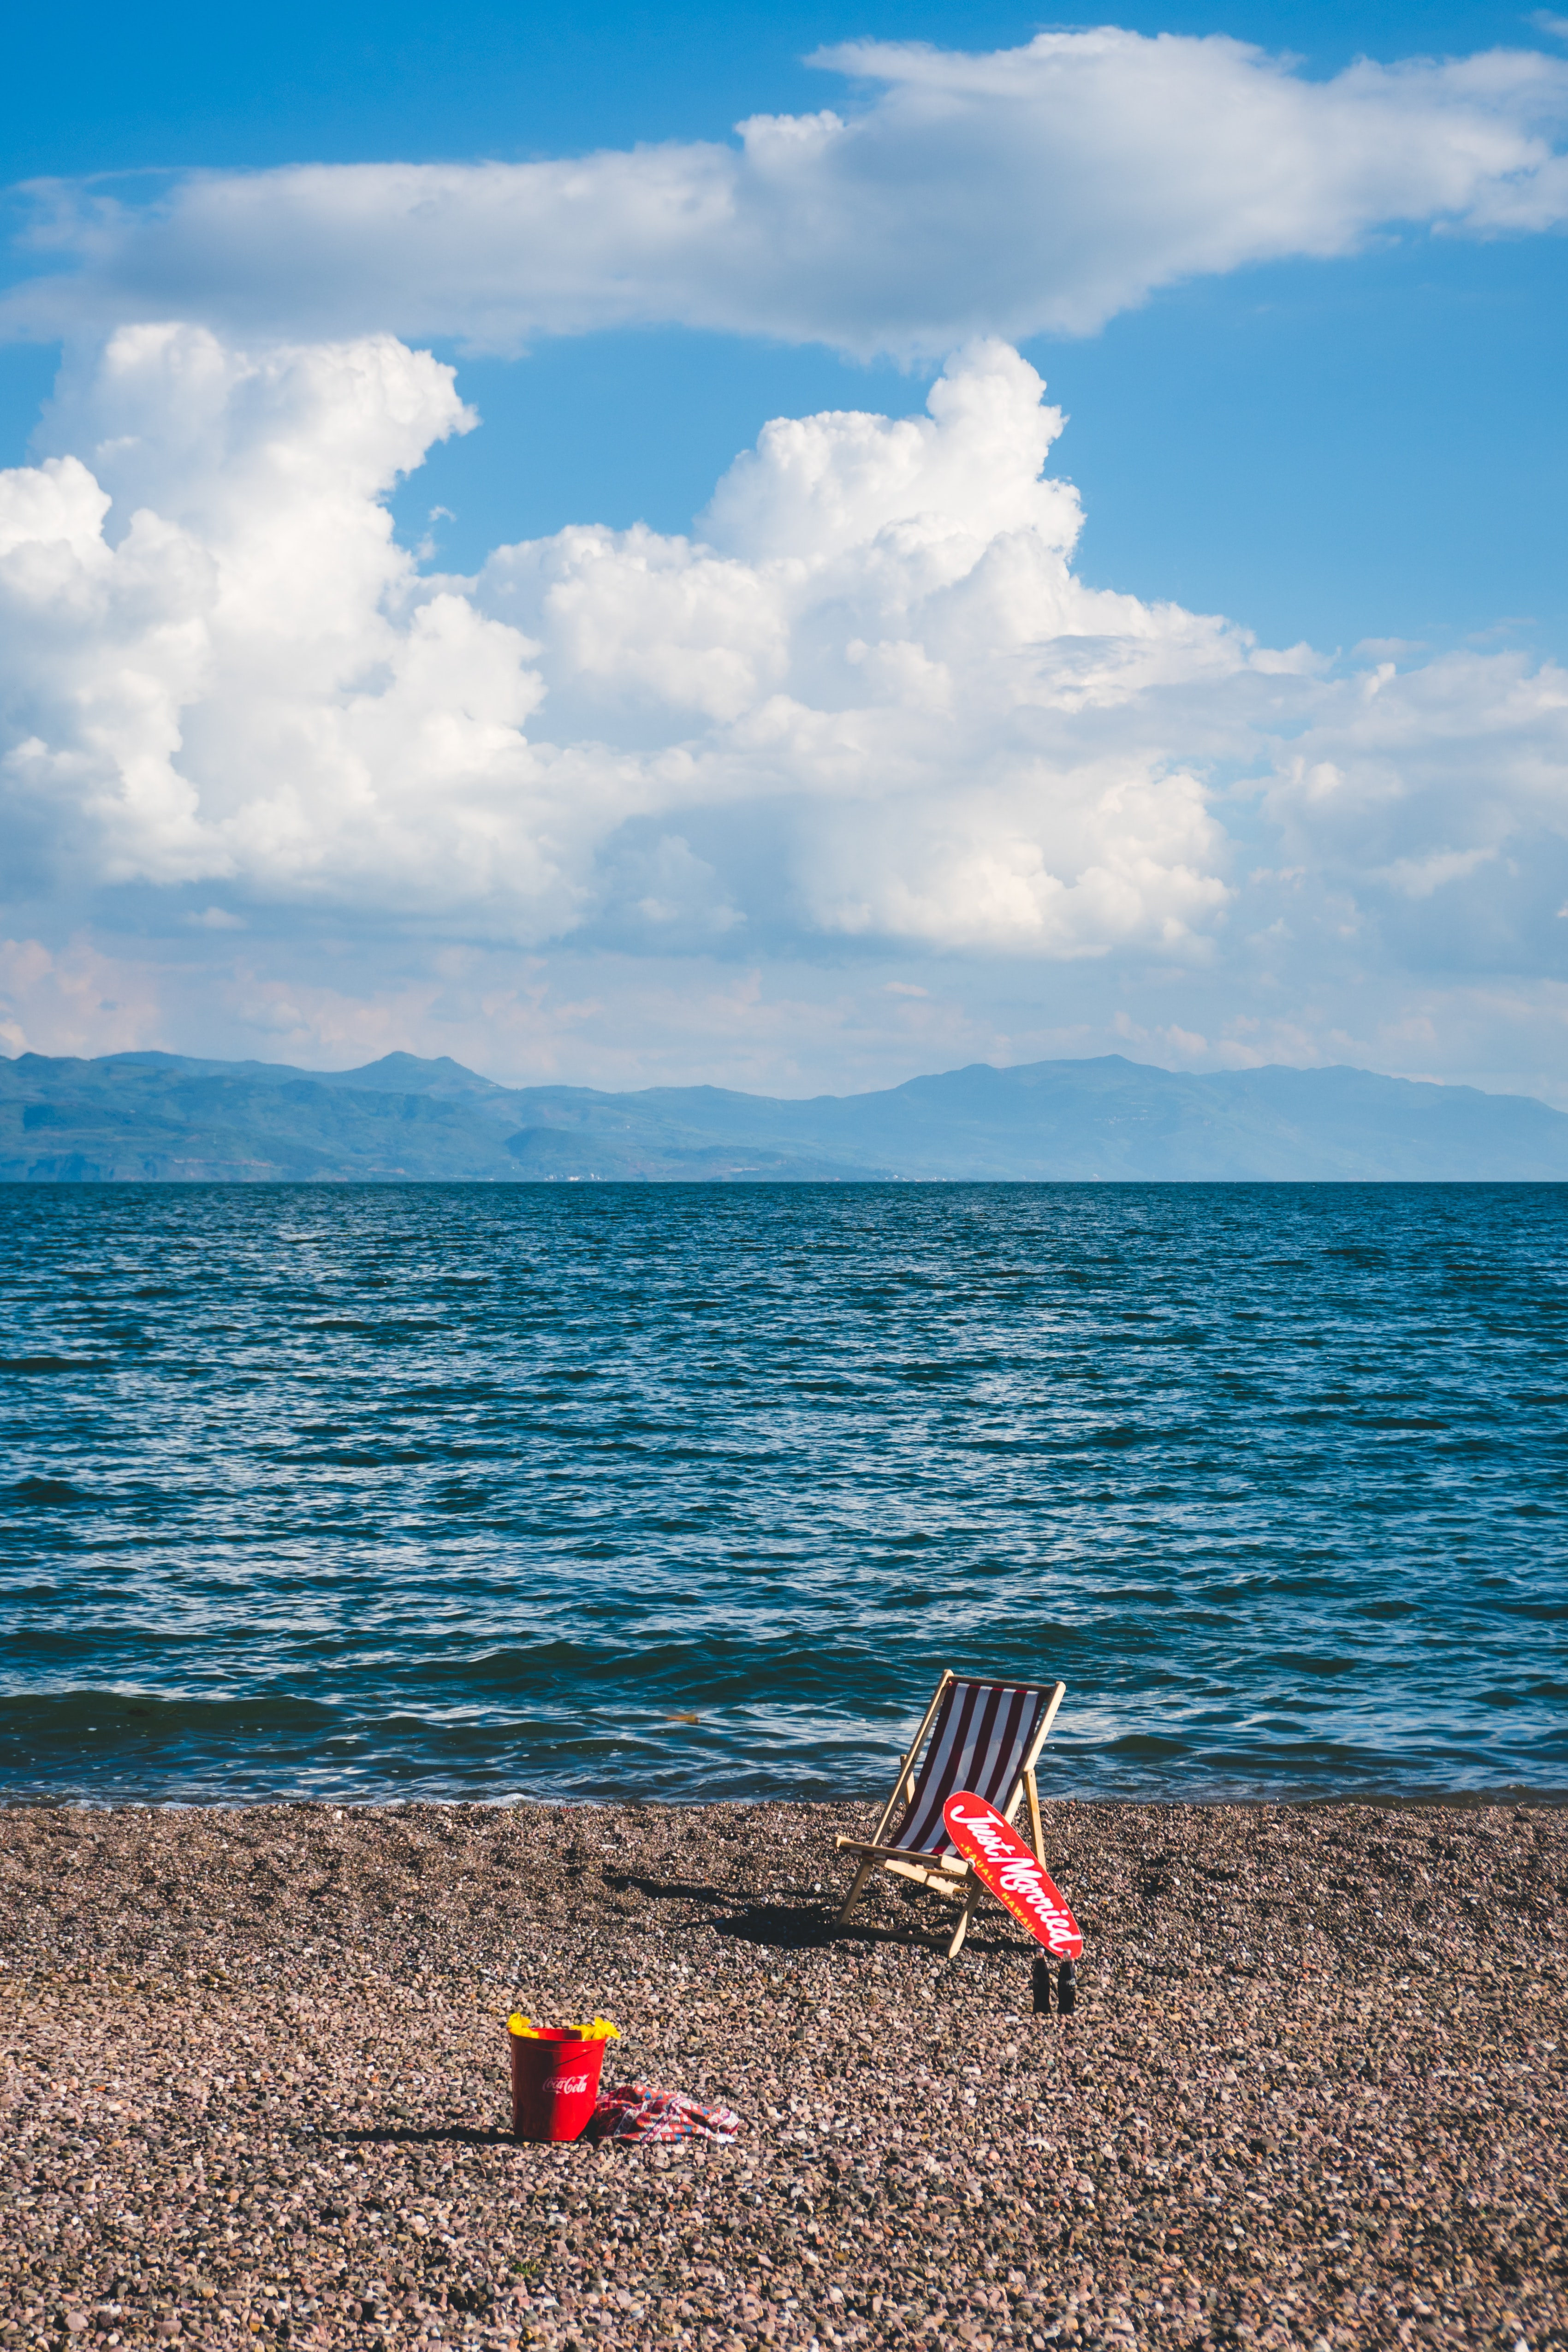 brown wooden camping chair near body of water